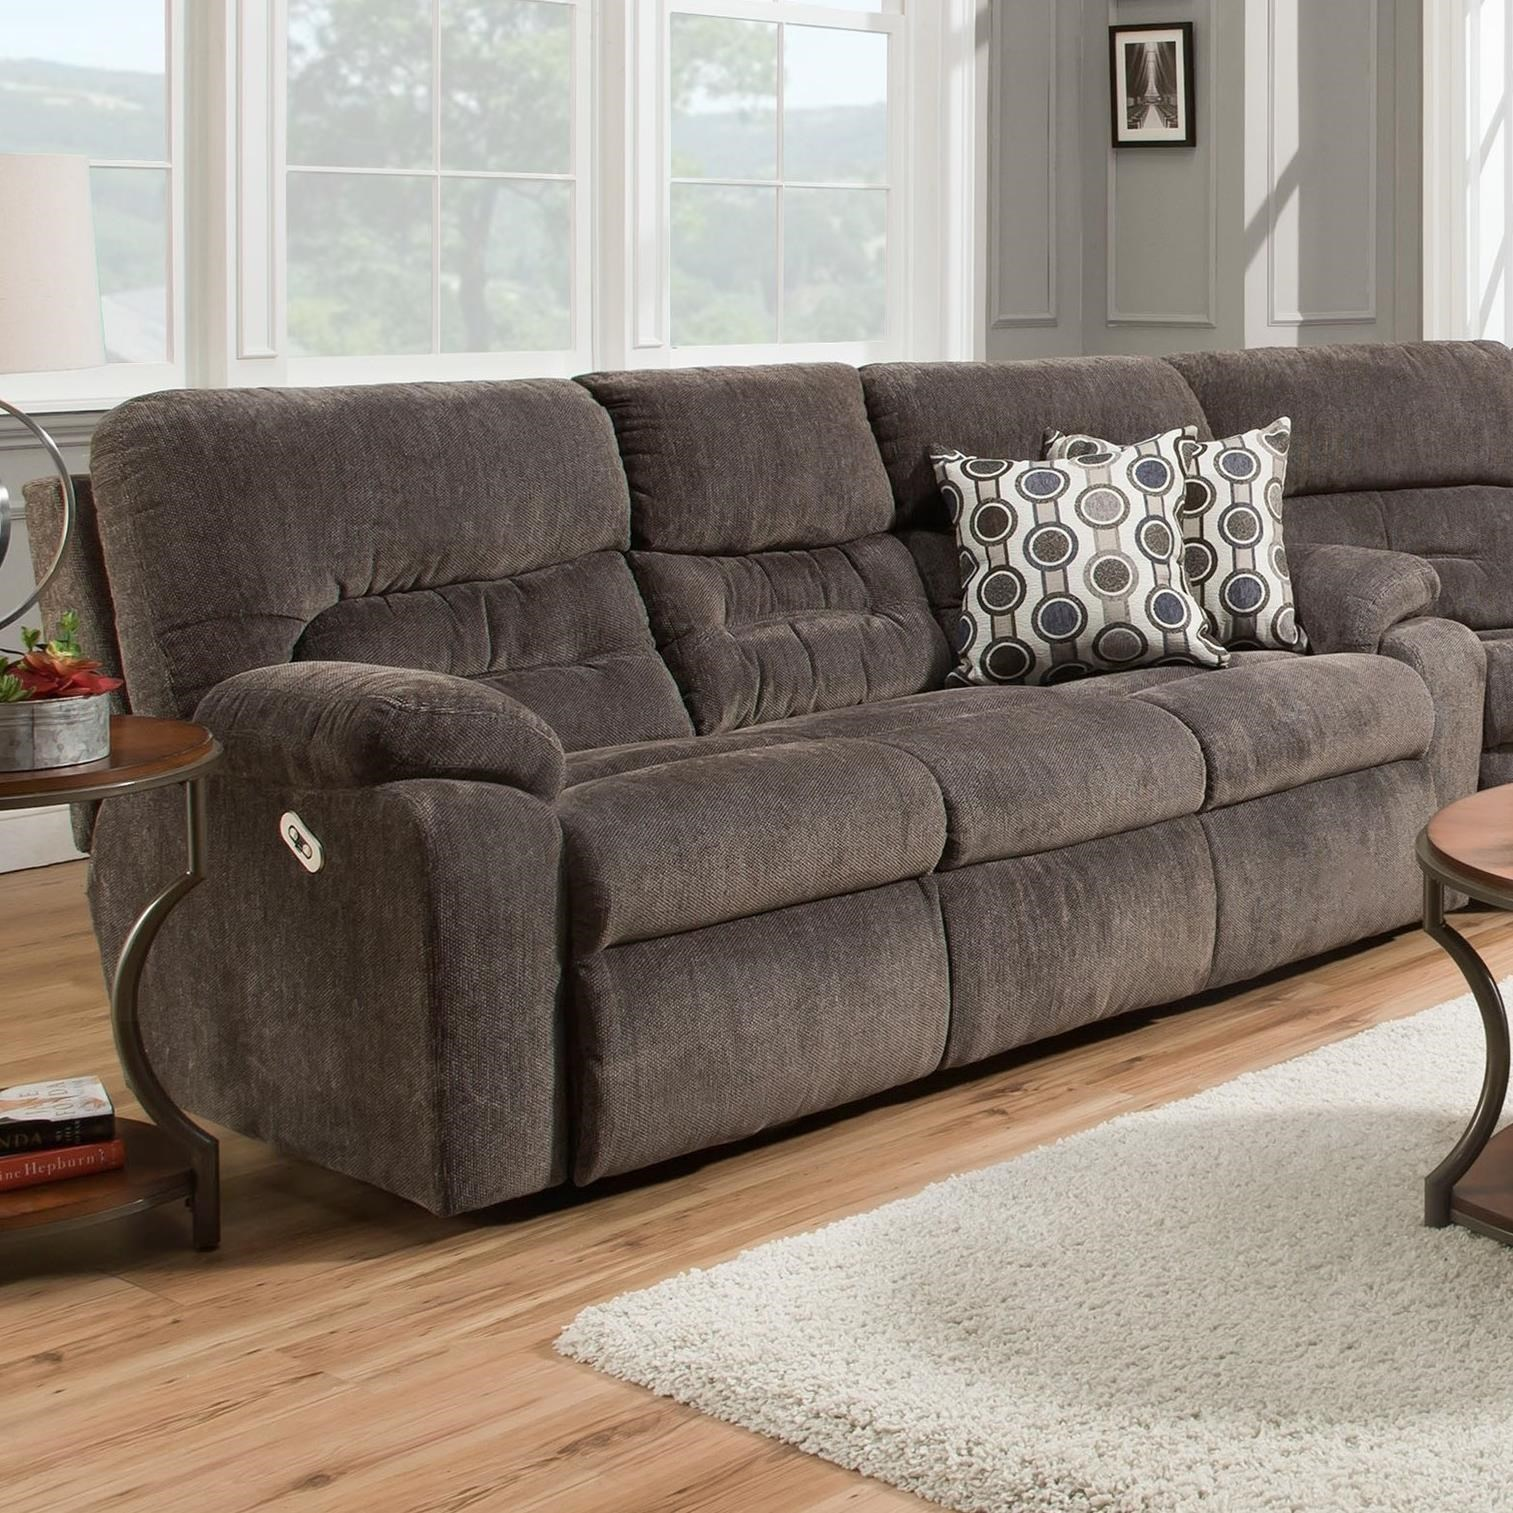 Franklin TributePower Headrest Reclining Sofa W/ USB